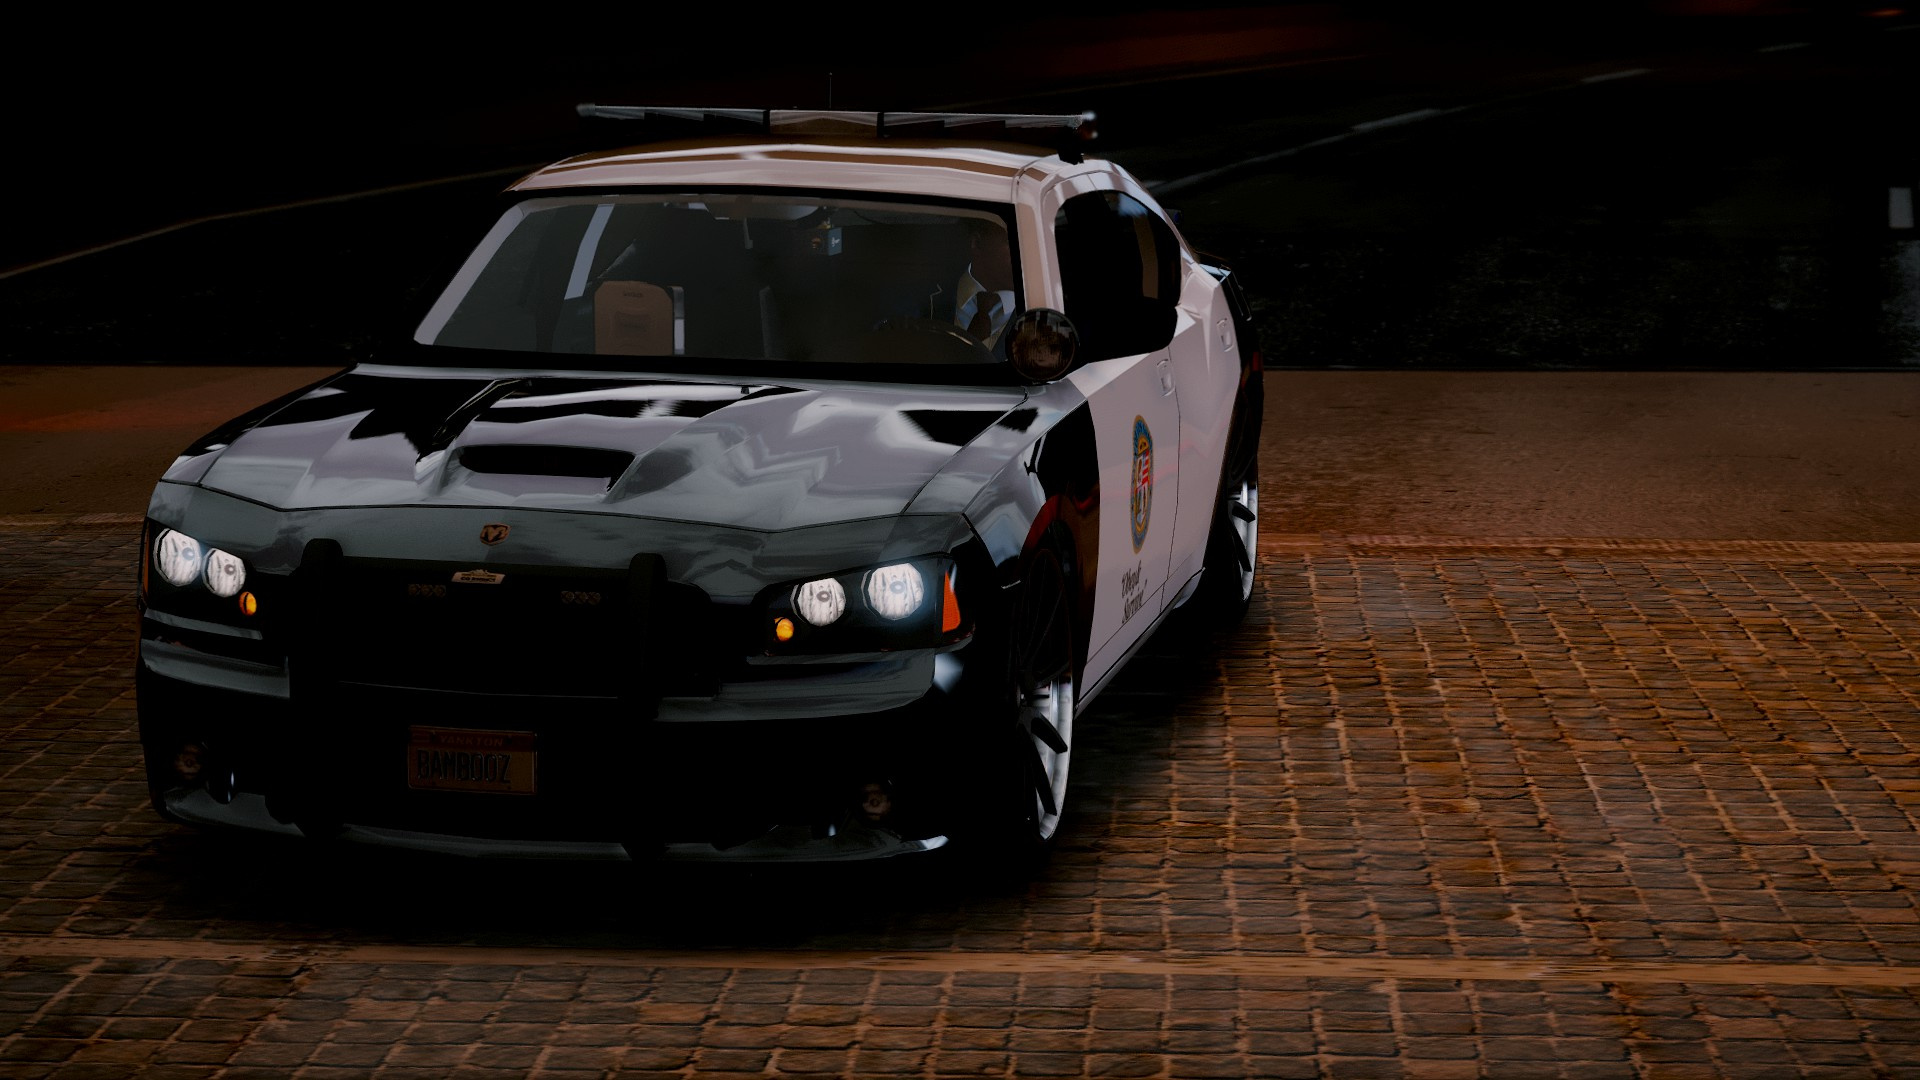 dodge charger srt8 police replace interior gta5. Black Bedroom Furniture Sets. Home Design Ideas